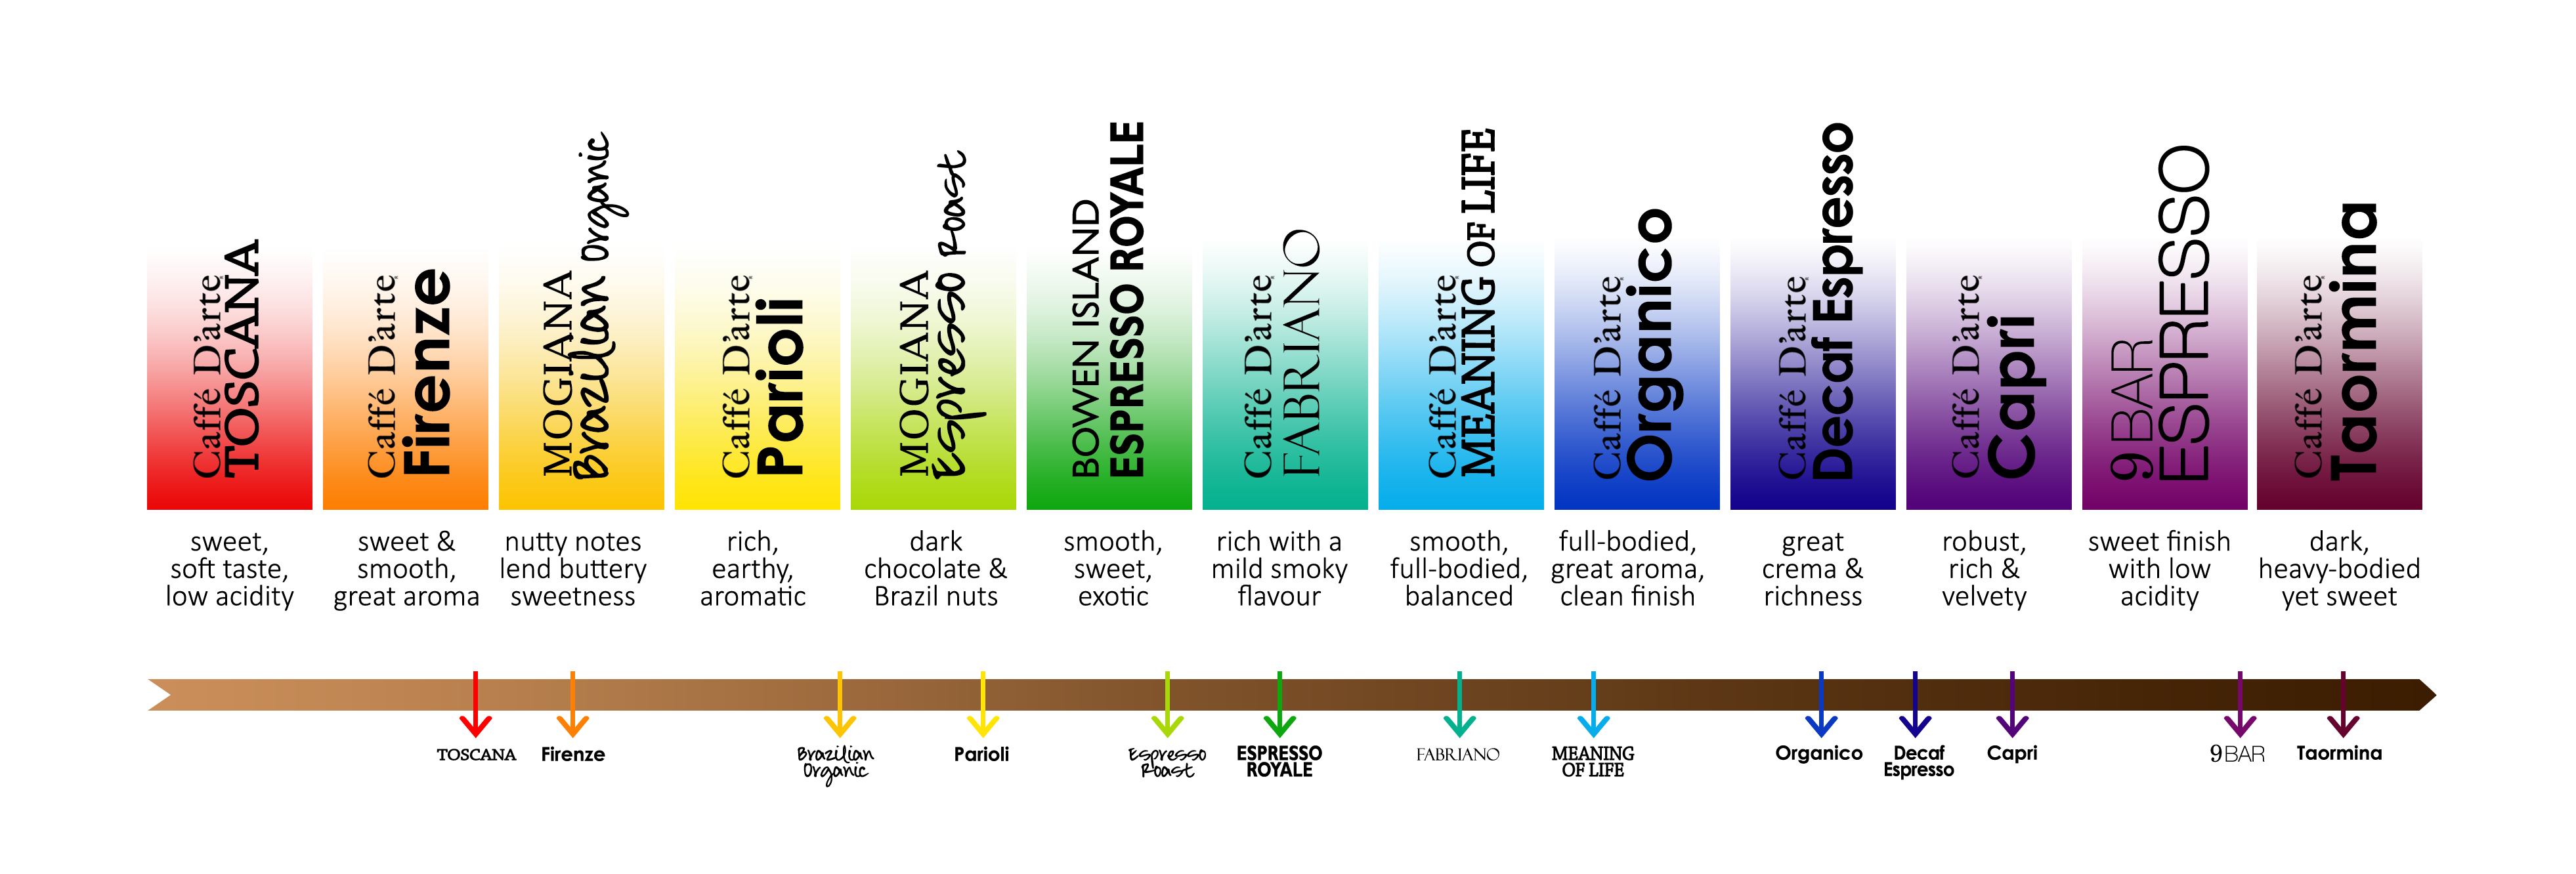 coffee-flavour-spectrum.png